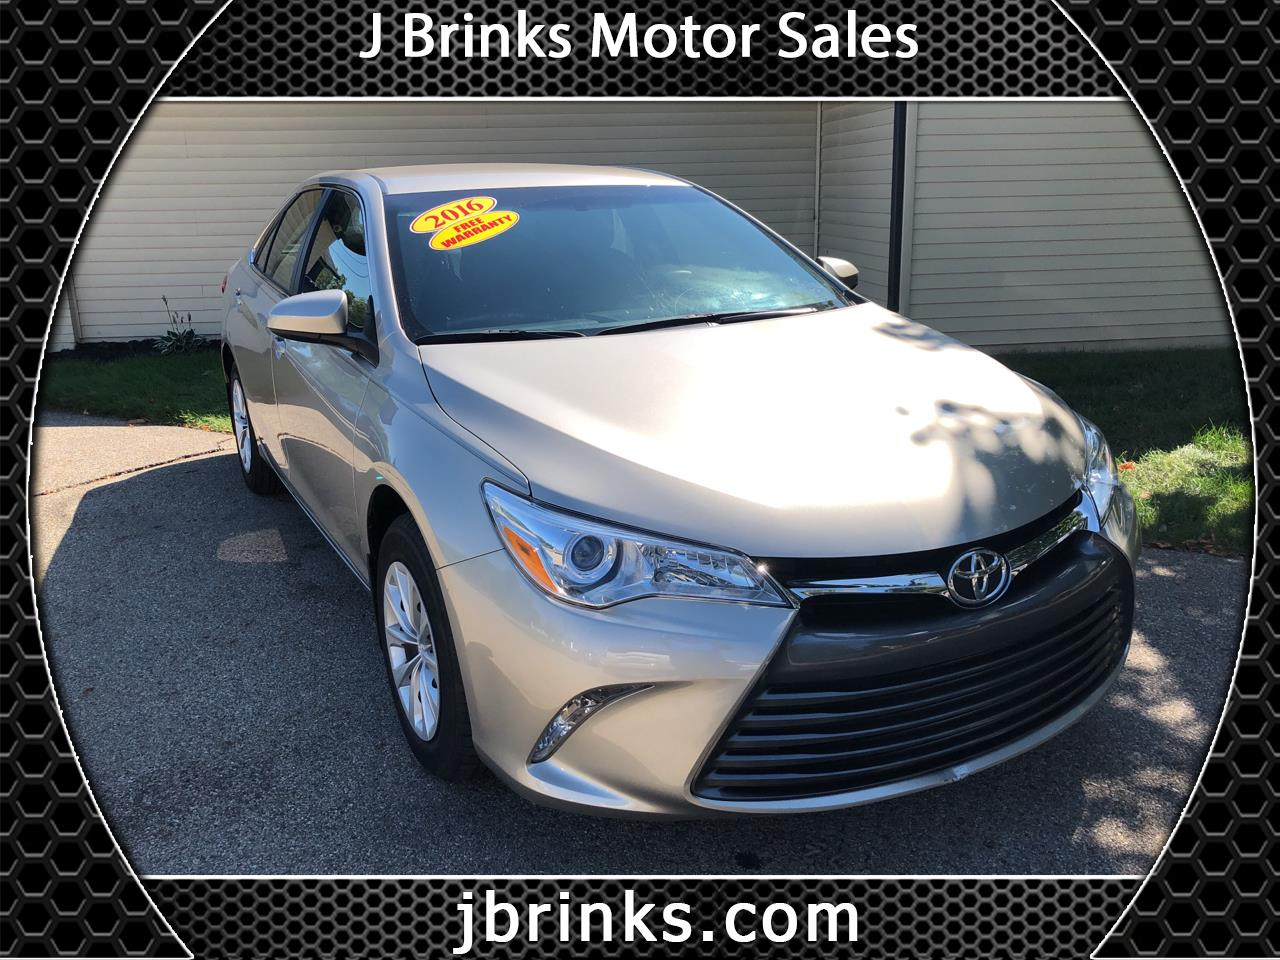 Toyota Camry 2014.5 4dr Sdn I4 Auto LE (Natl) 2016